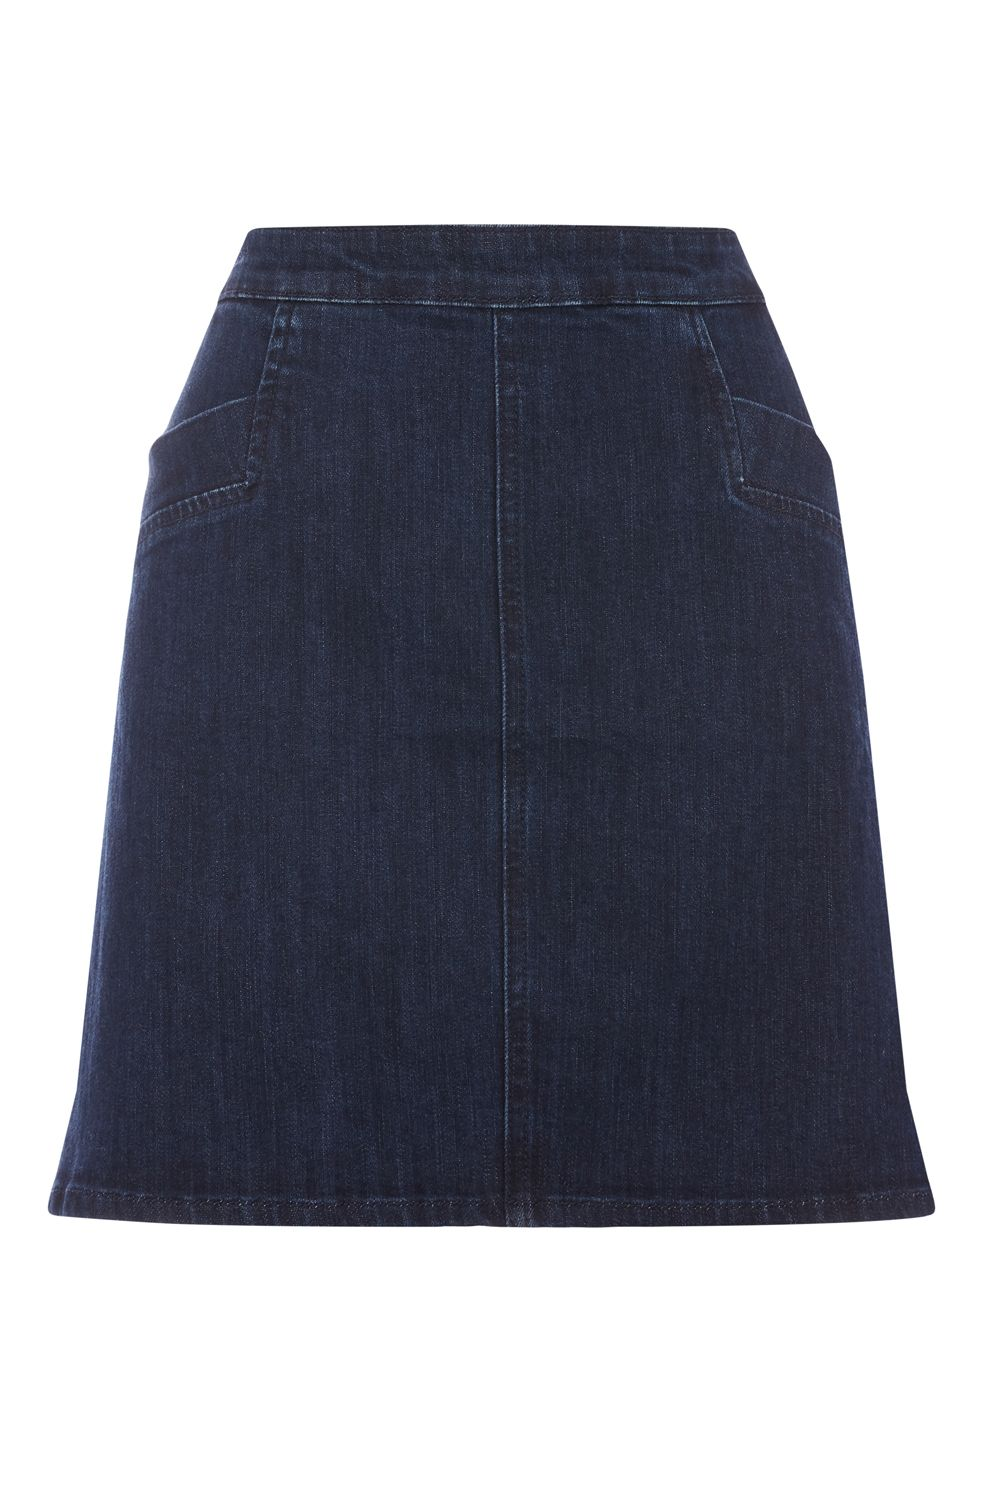 Oasis Denim Pocket Mini Skirt, Denim Dark Wash